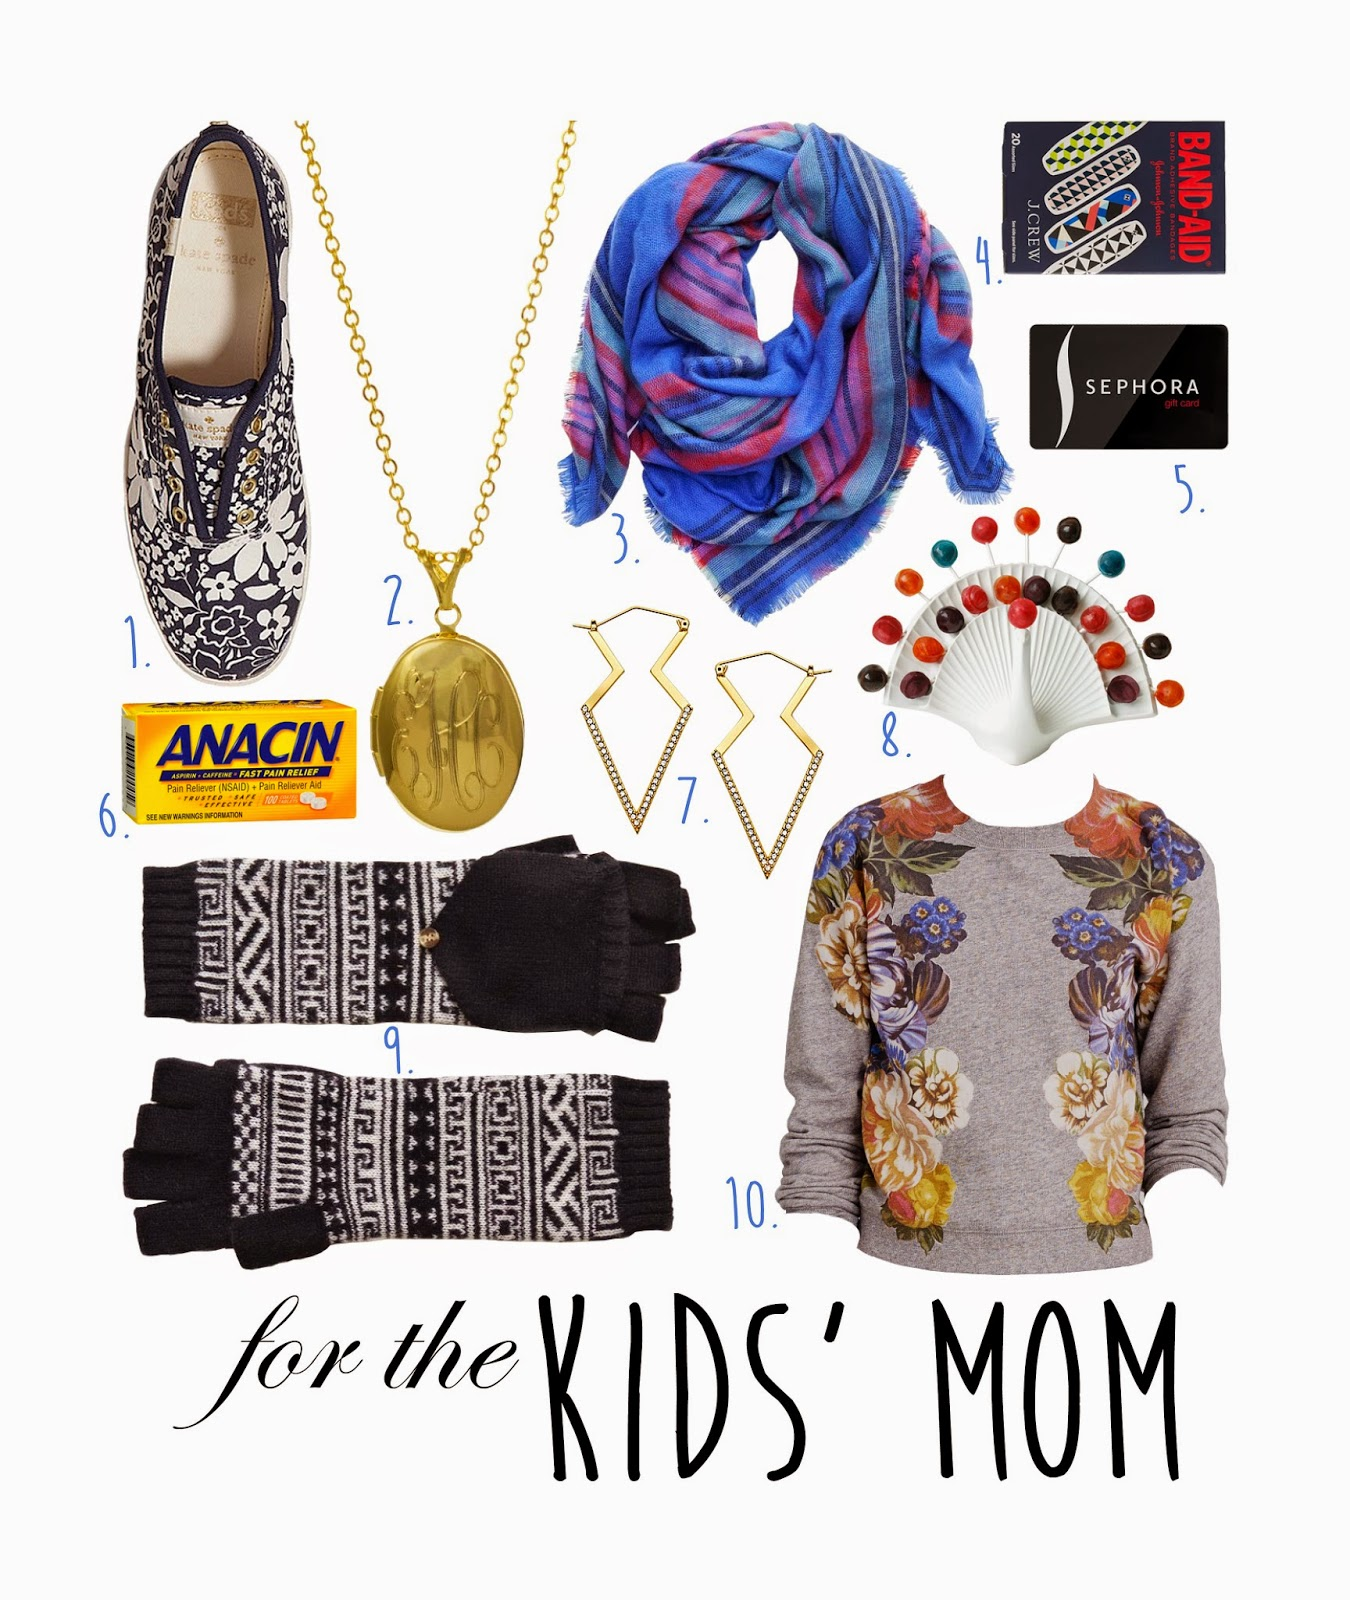 kids-mom-gift-guide, stay-at-home-mom-gift-guide, holiday-gift-guide, mommy-gift-guide, gift-guide-2-14, mommy-gift-guide-2014